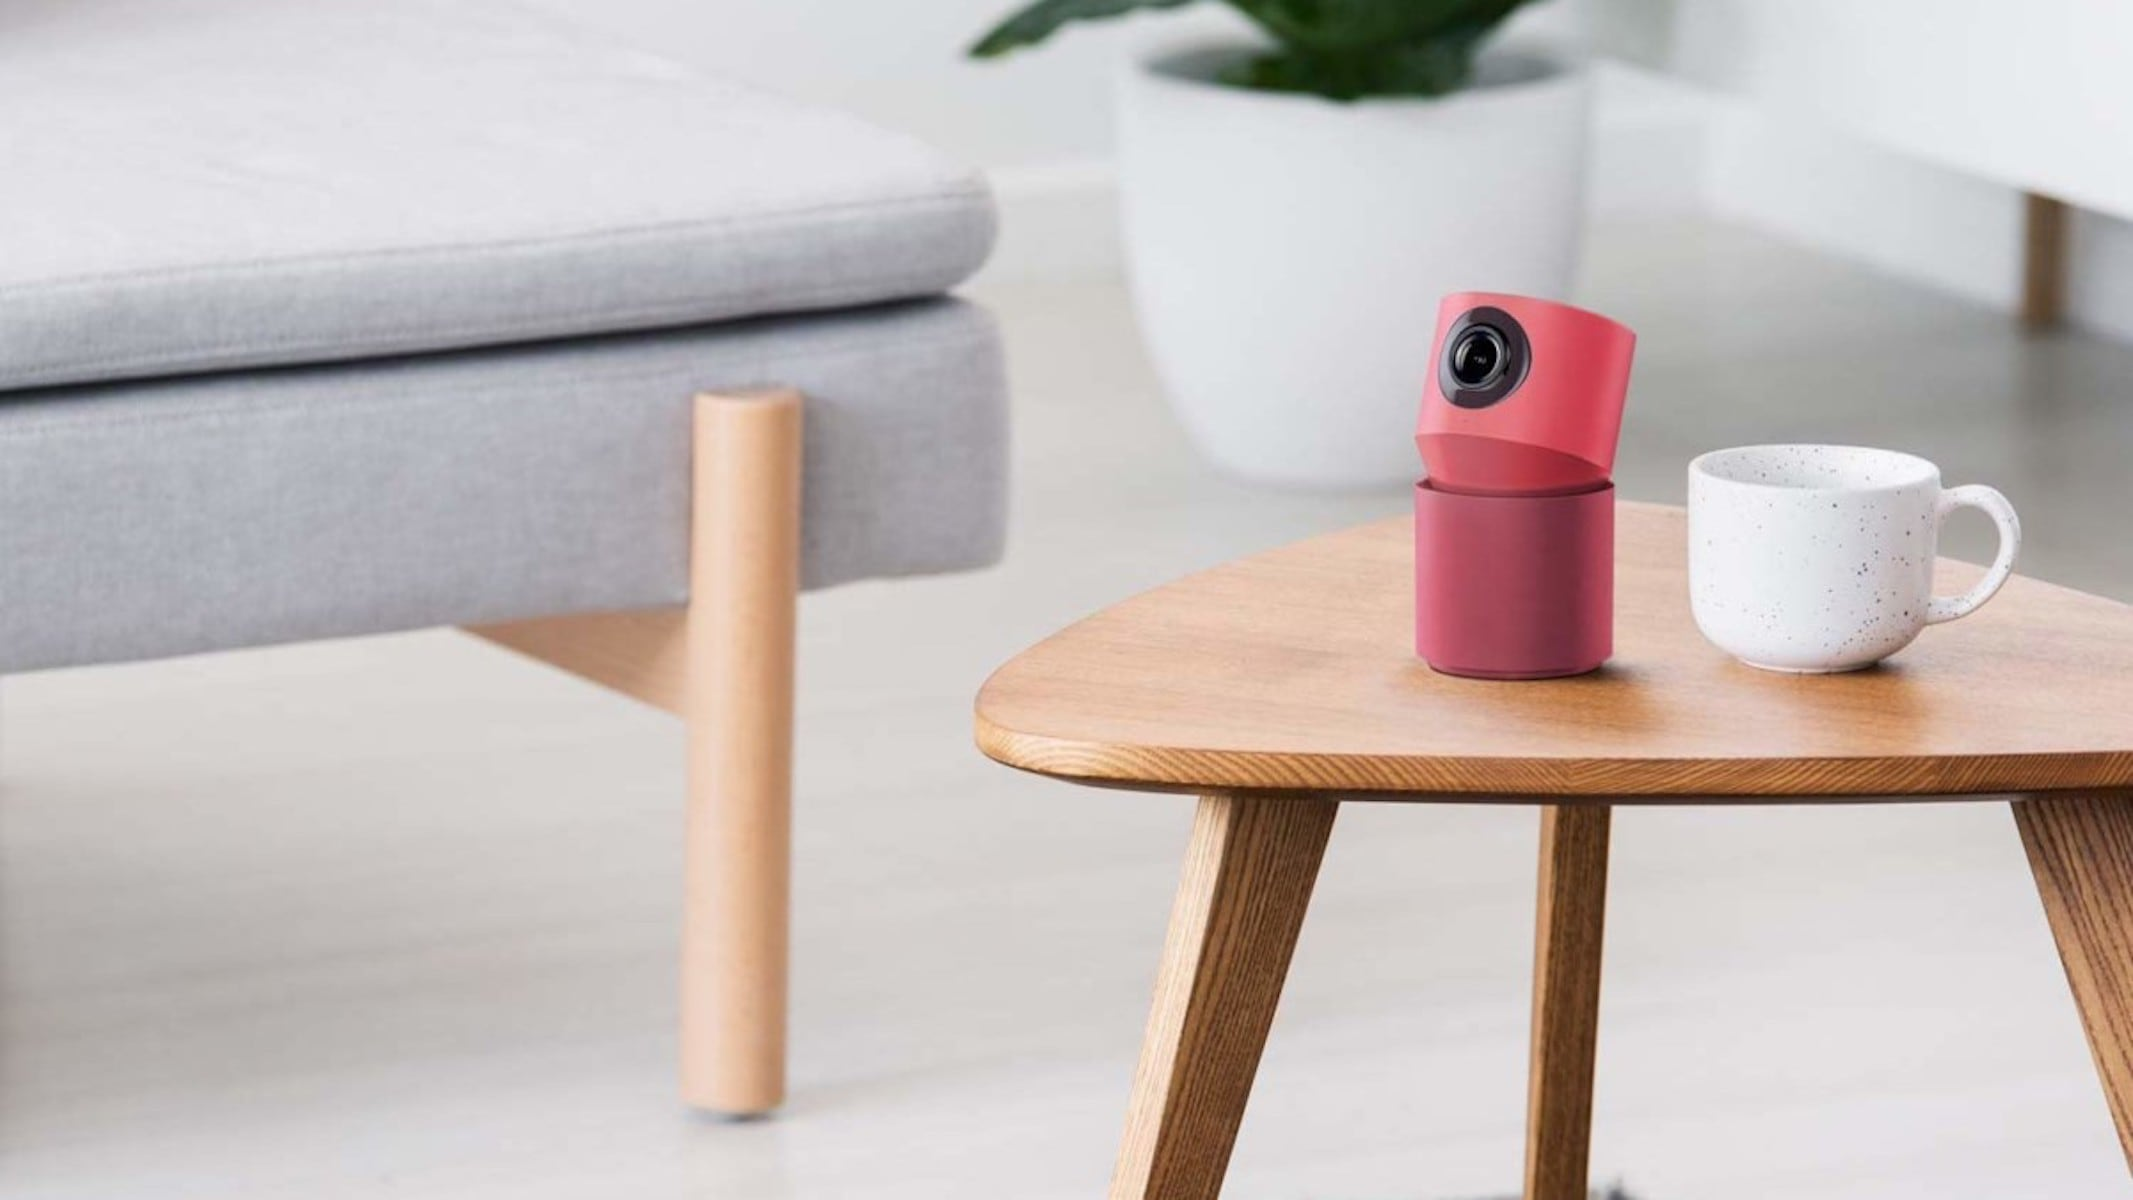 Affordable home security gadgets to make you feel safer